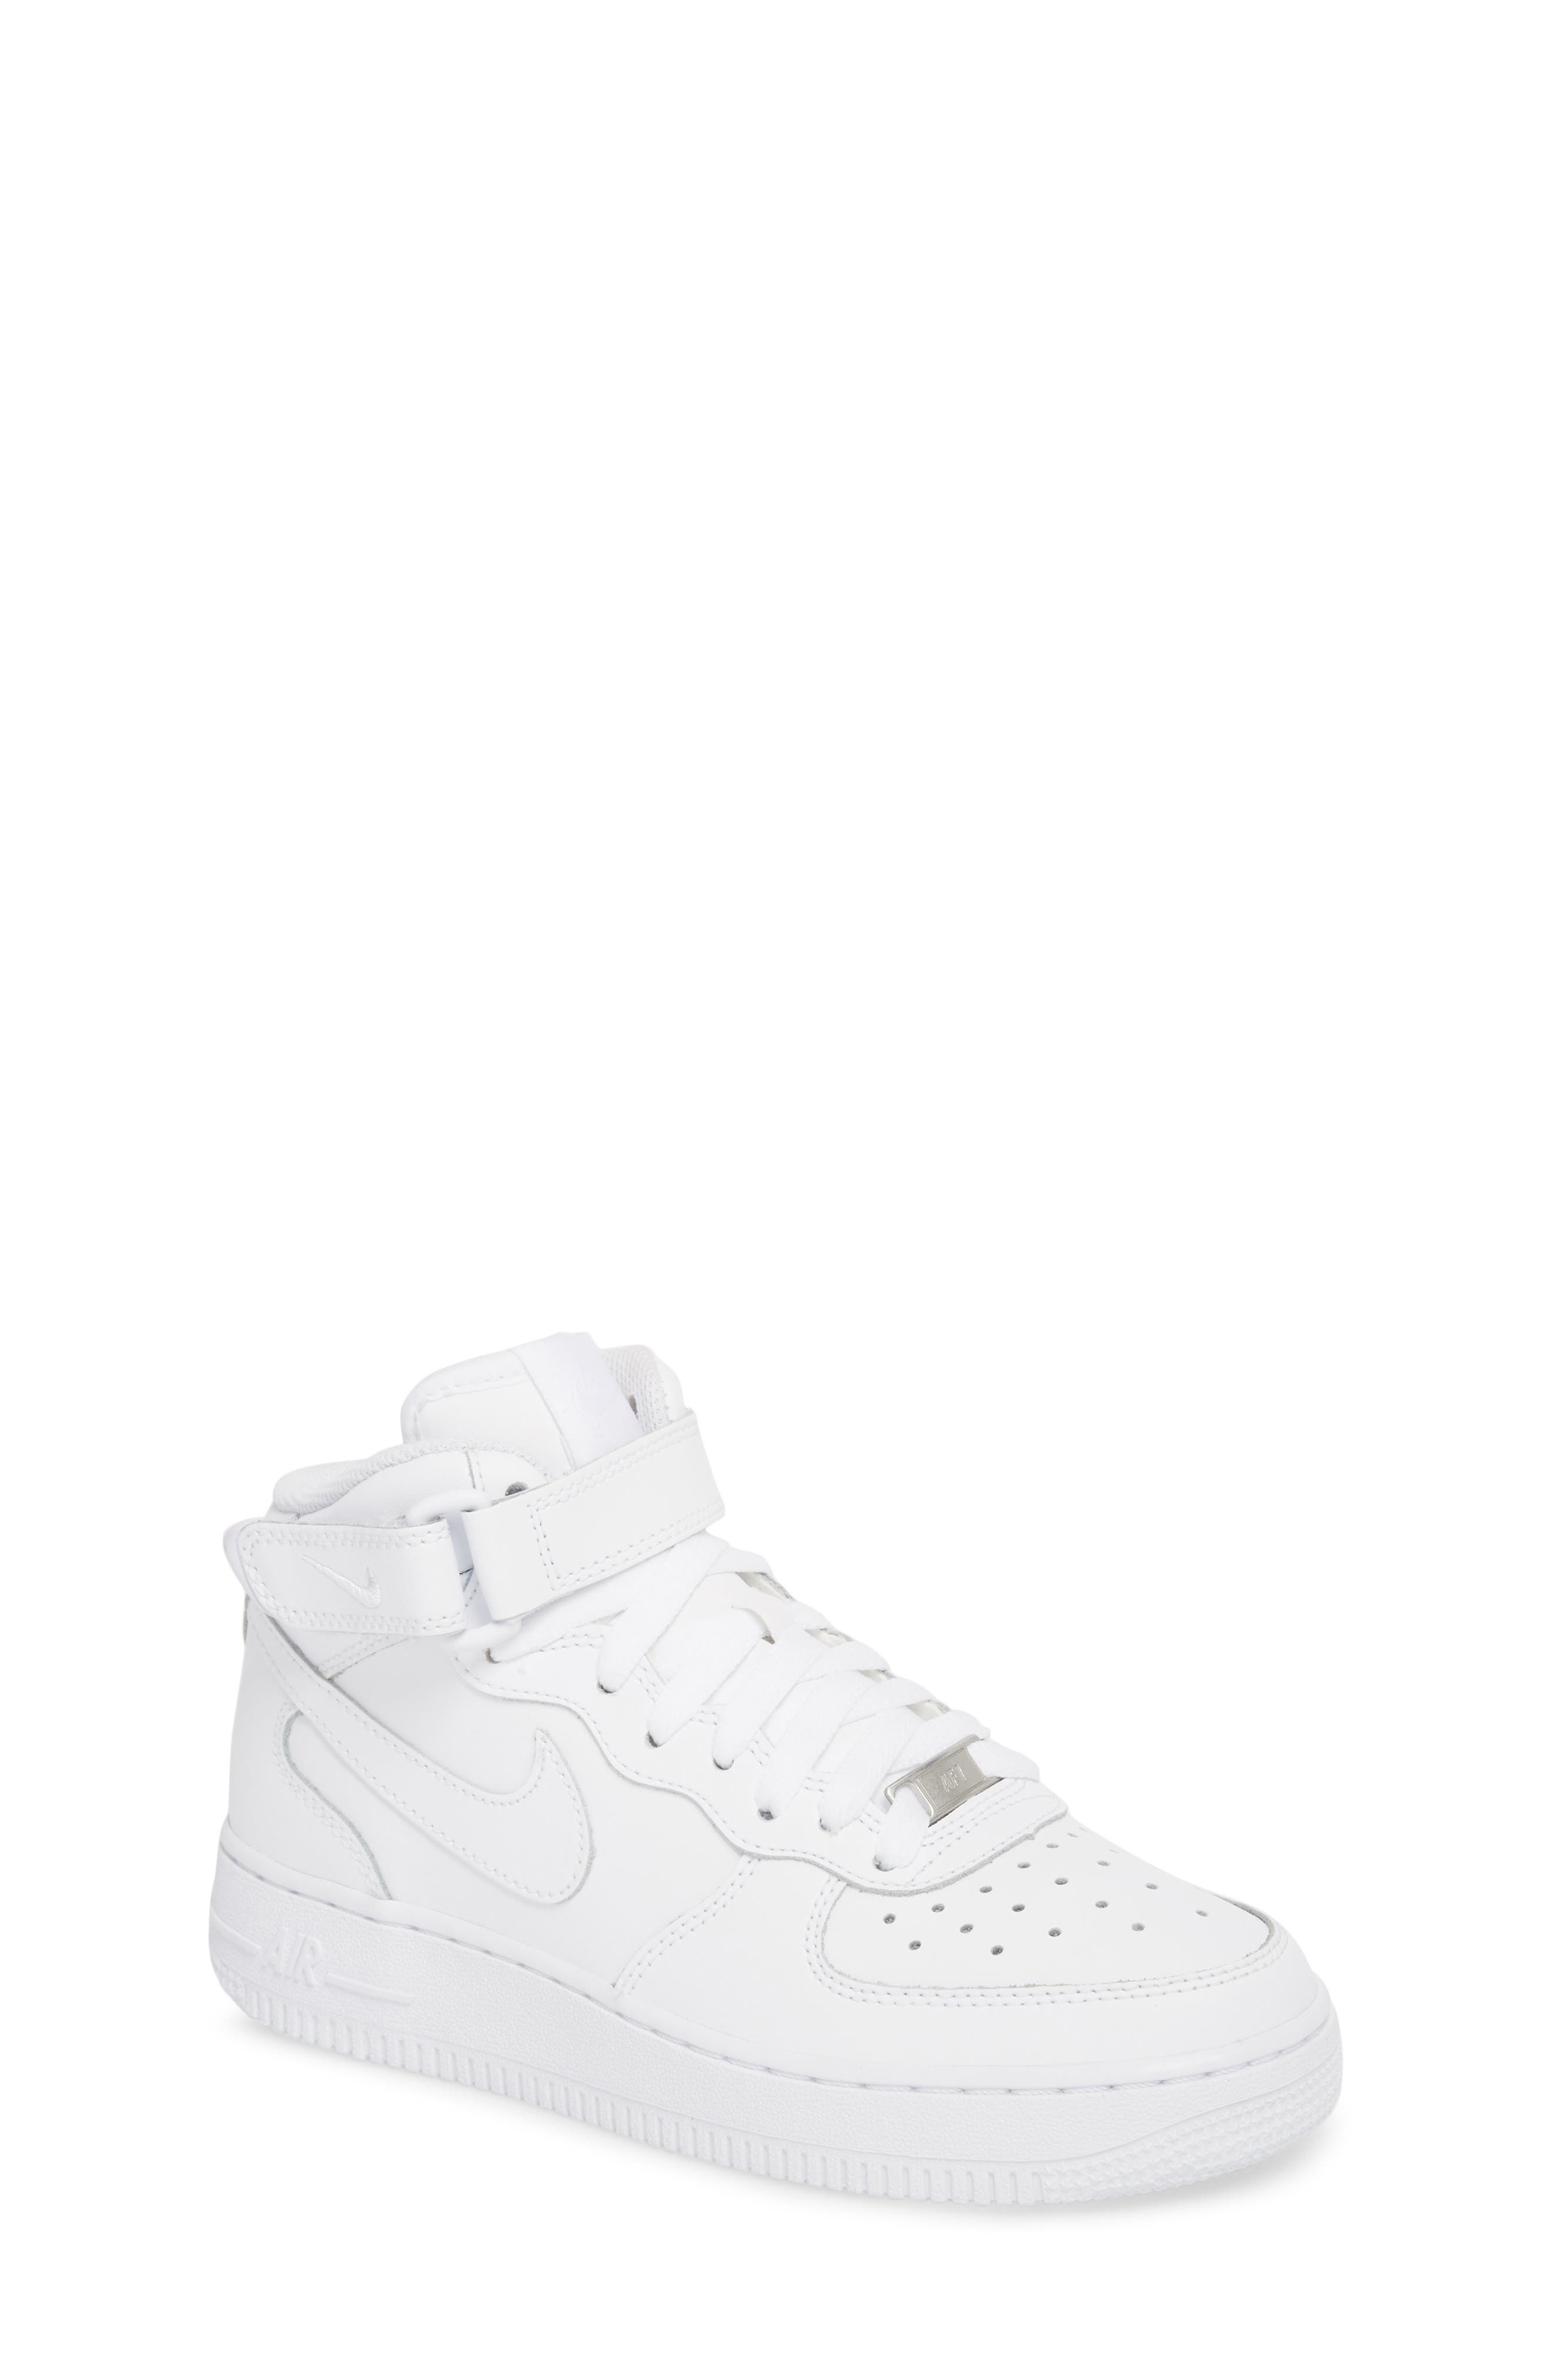 Air Force 1 Mid Top Sneaker,                             Main thumbnail 1, color,                             WHITE